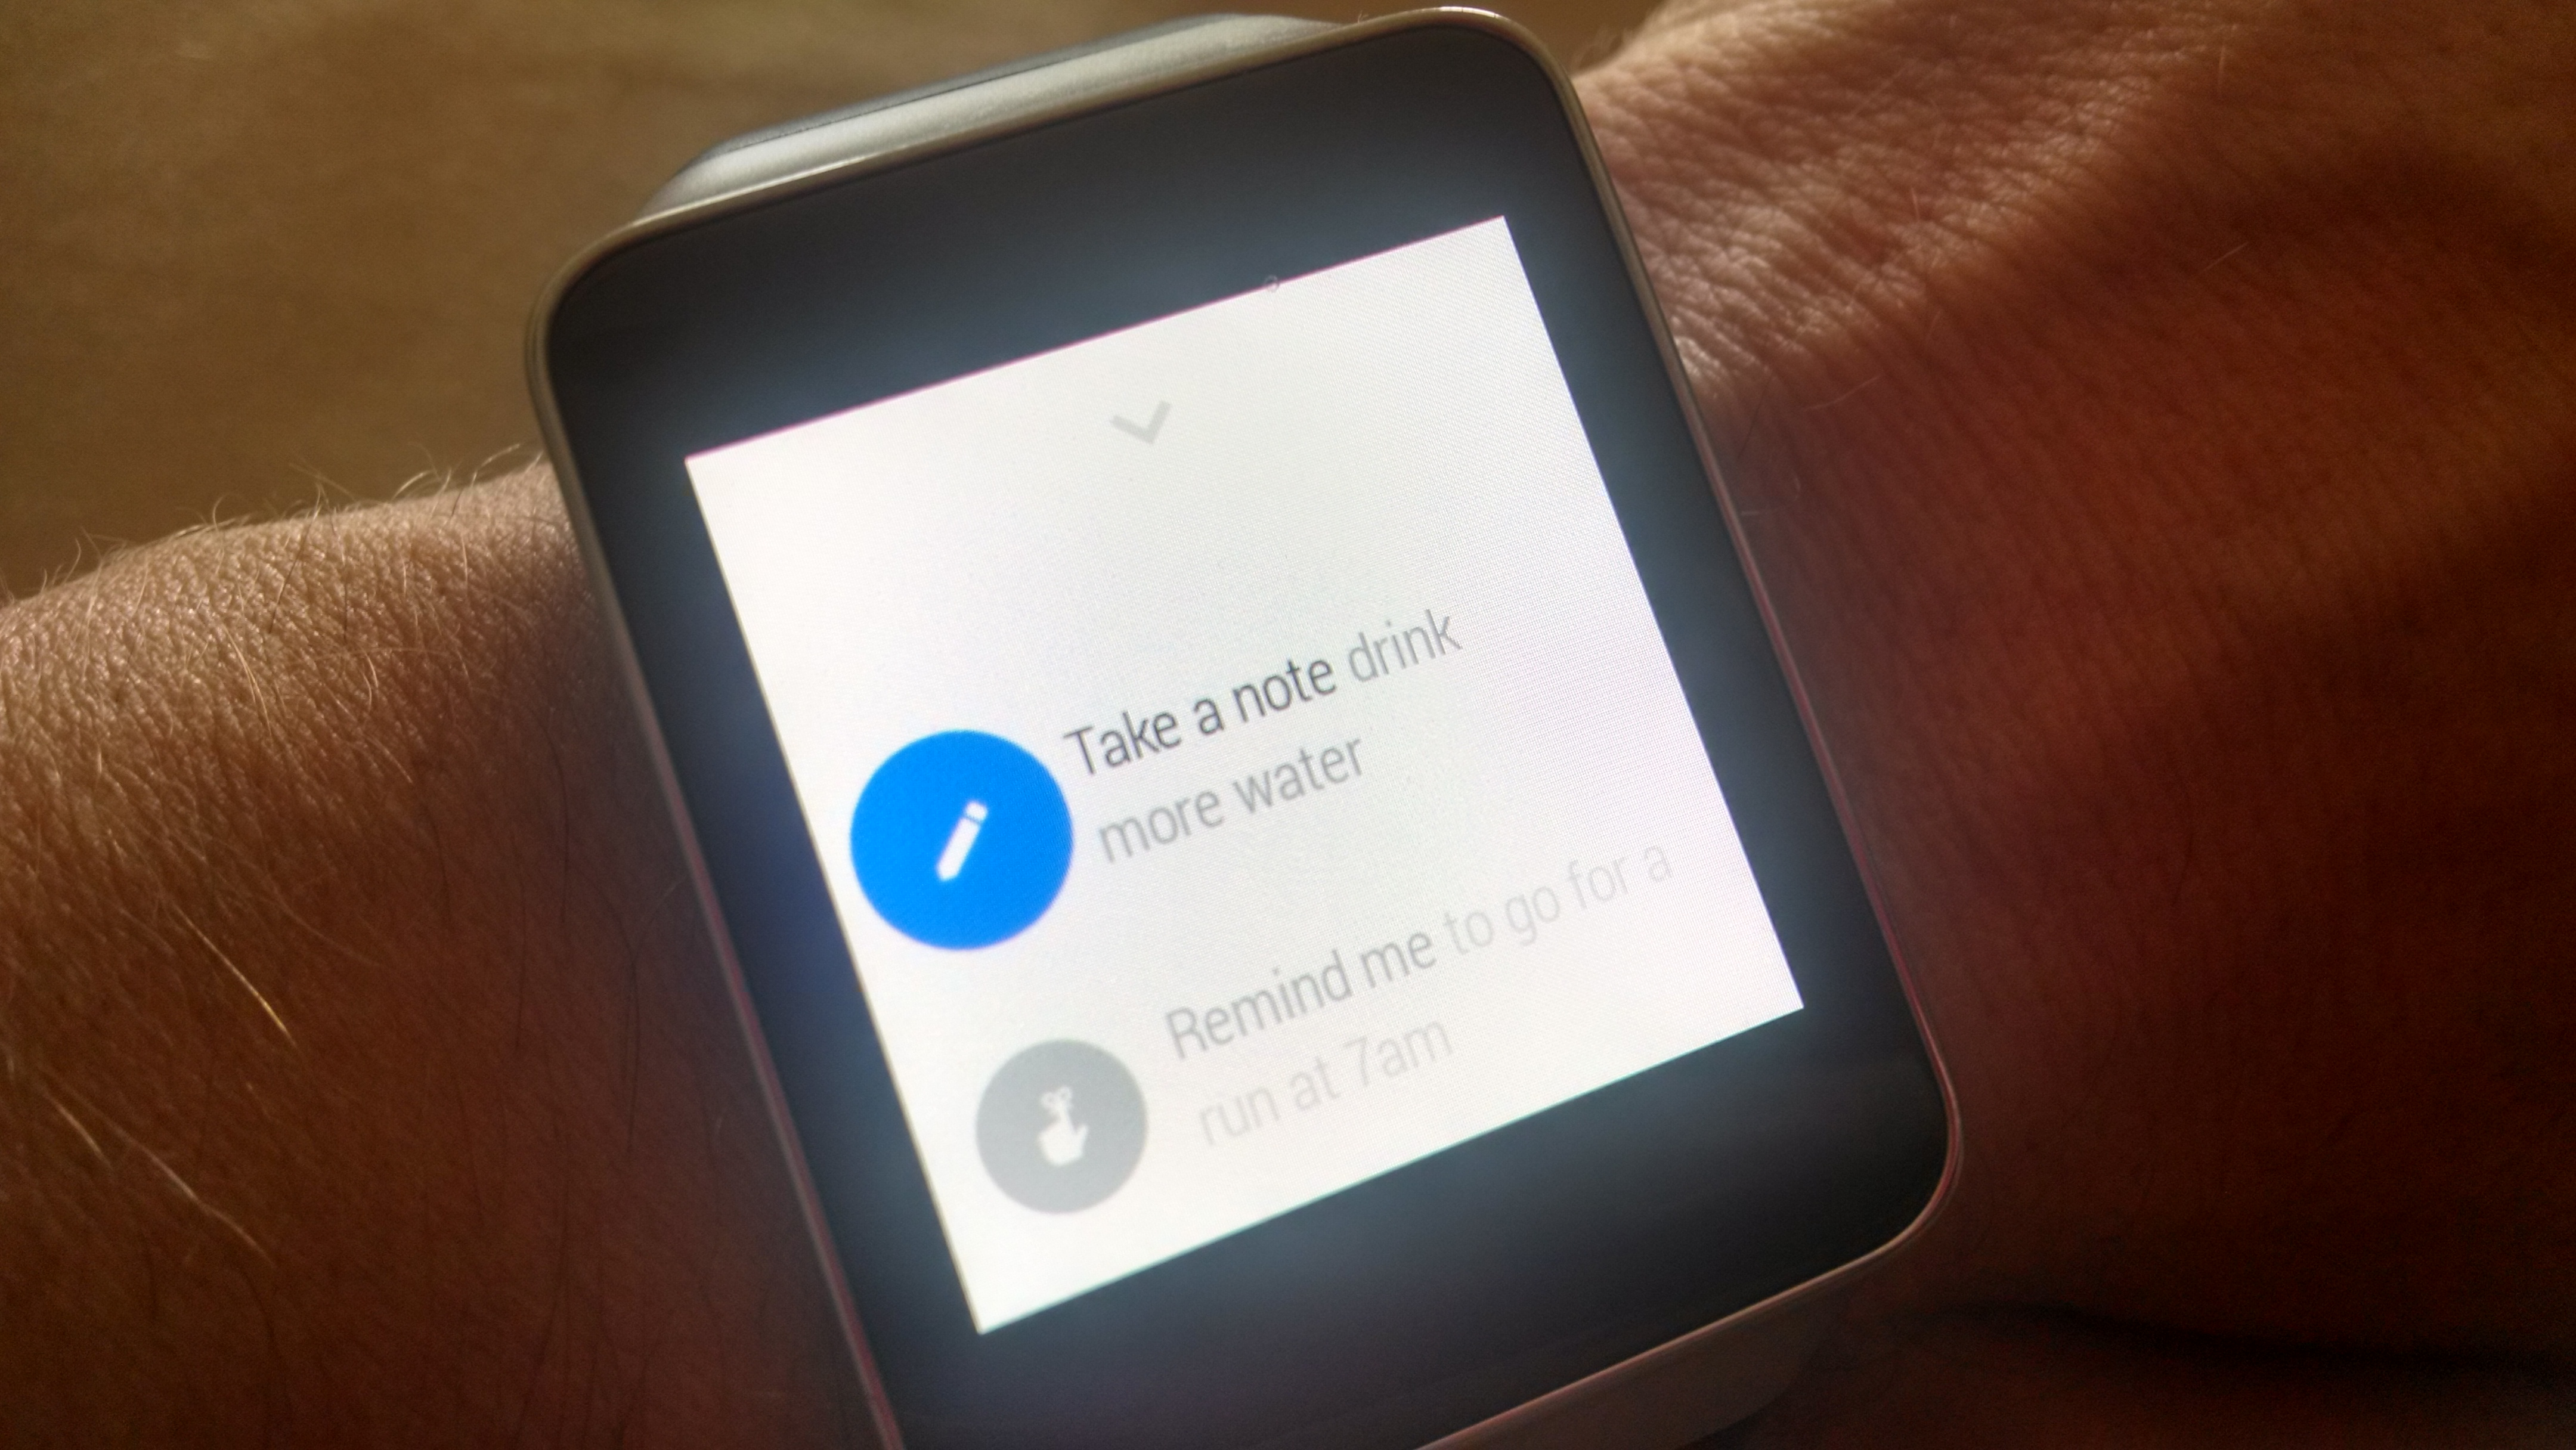 Android Wear options